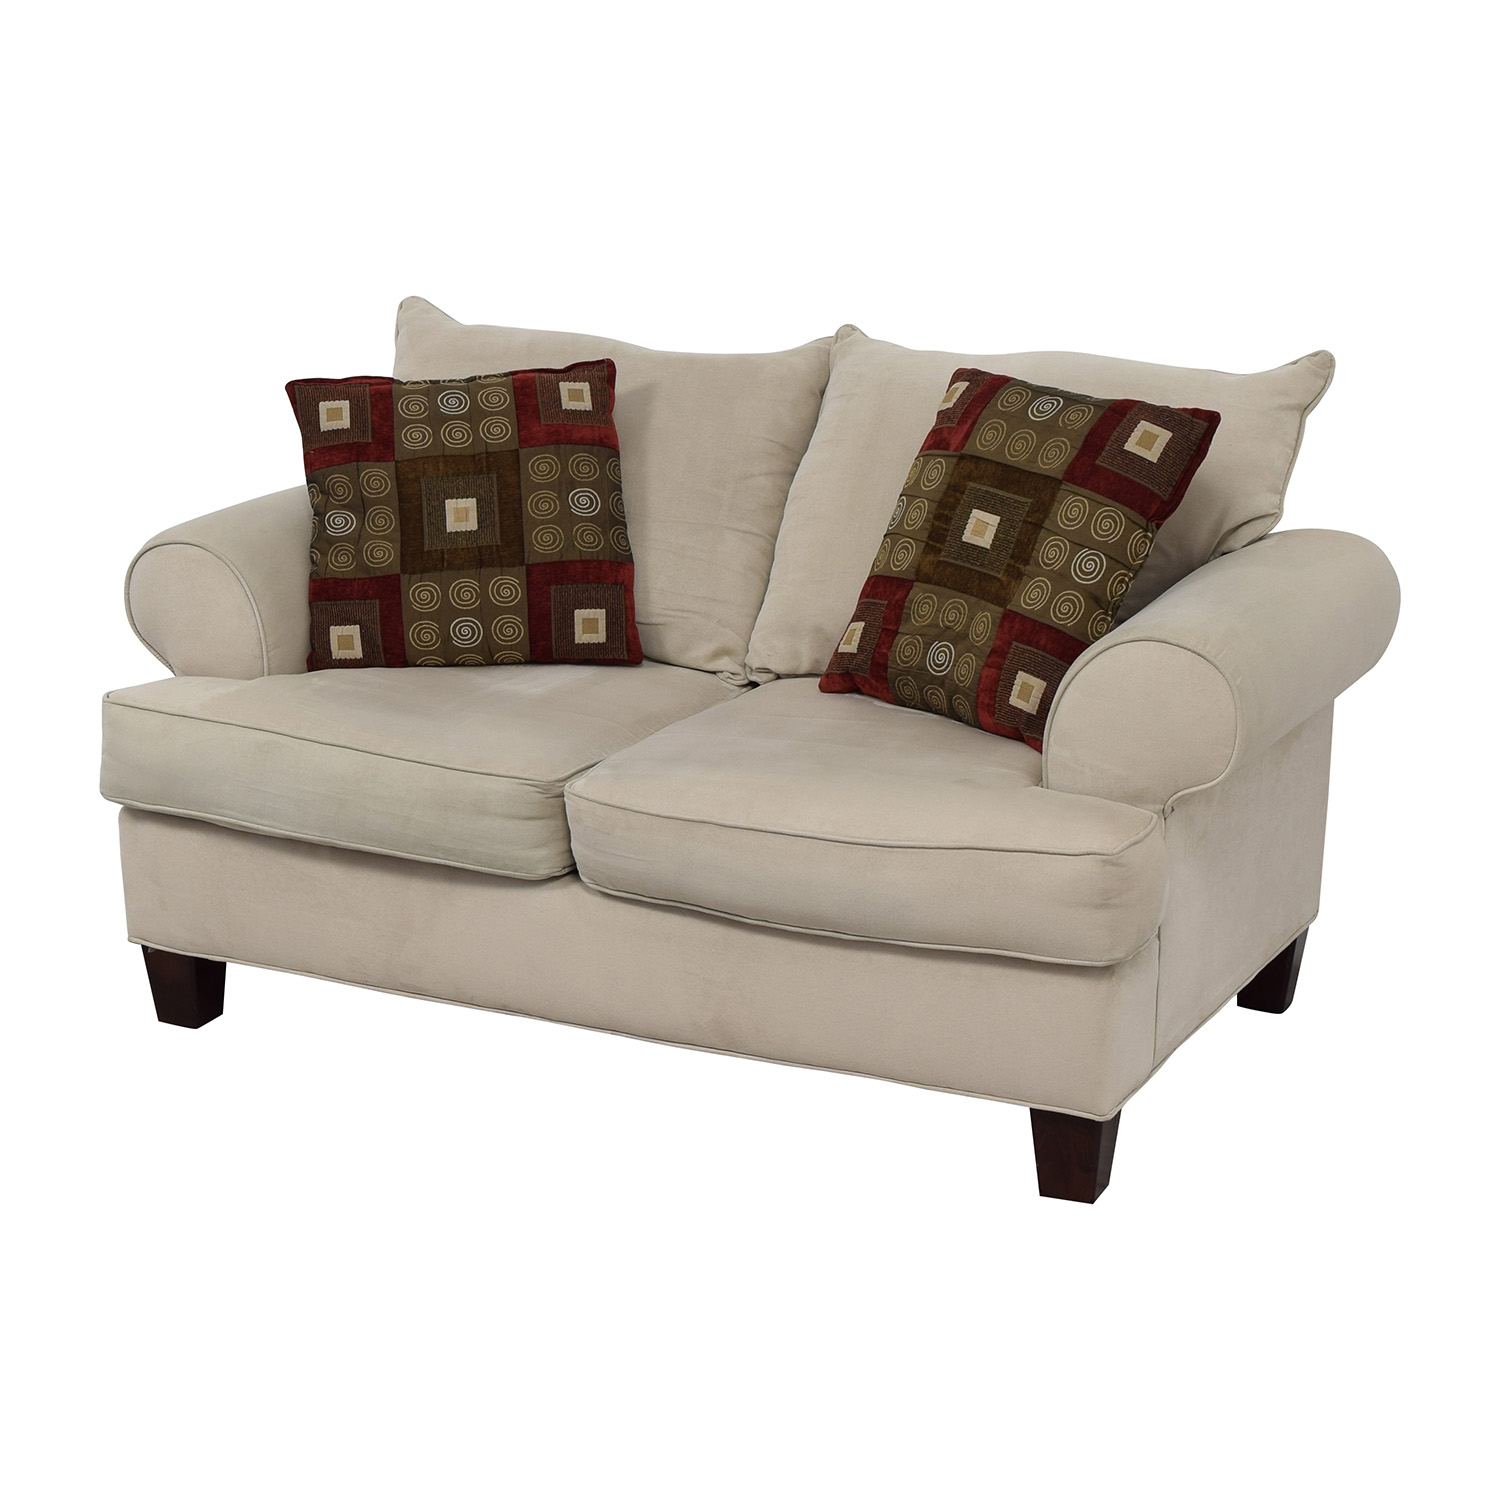 shop Bobs Discount Furniture Cream Love Seat Bobs Discount Furniture Sofas